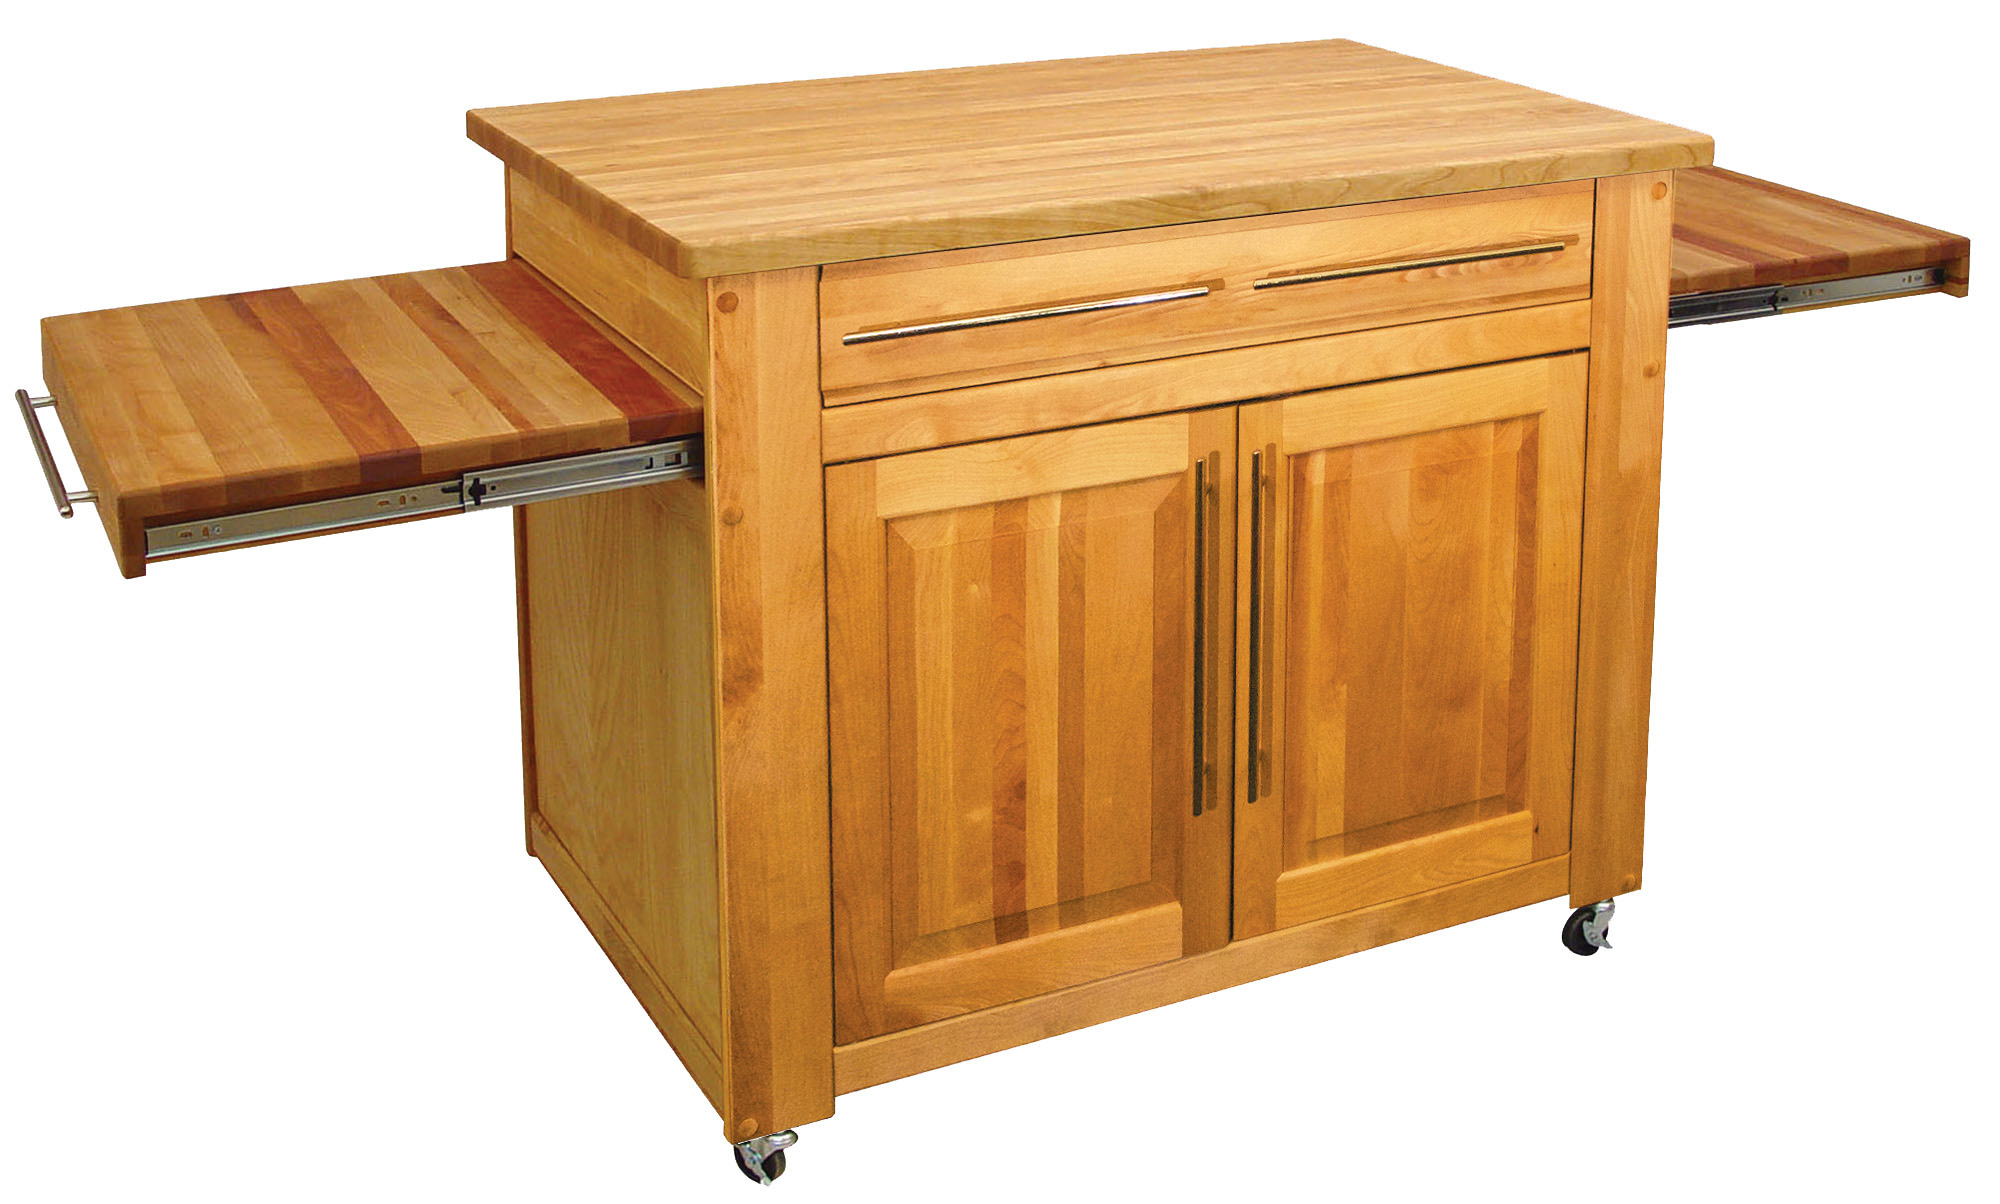 movable kitchen islands rolling on wheels mobile catskill s empire work center butcher block island pull out leaves